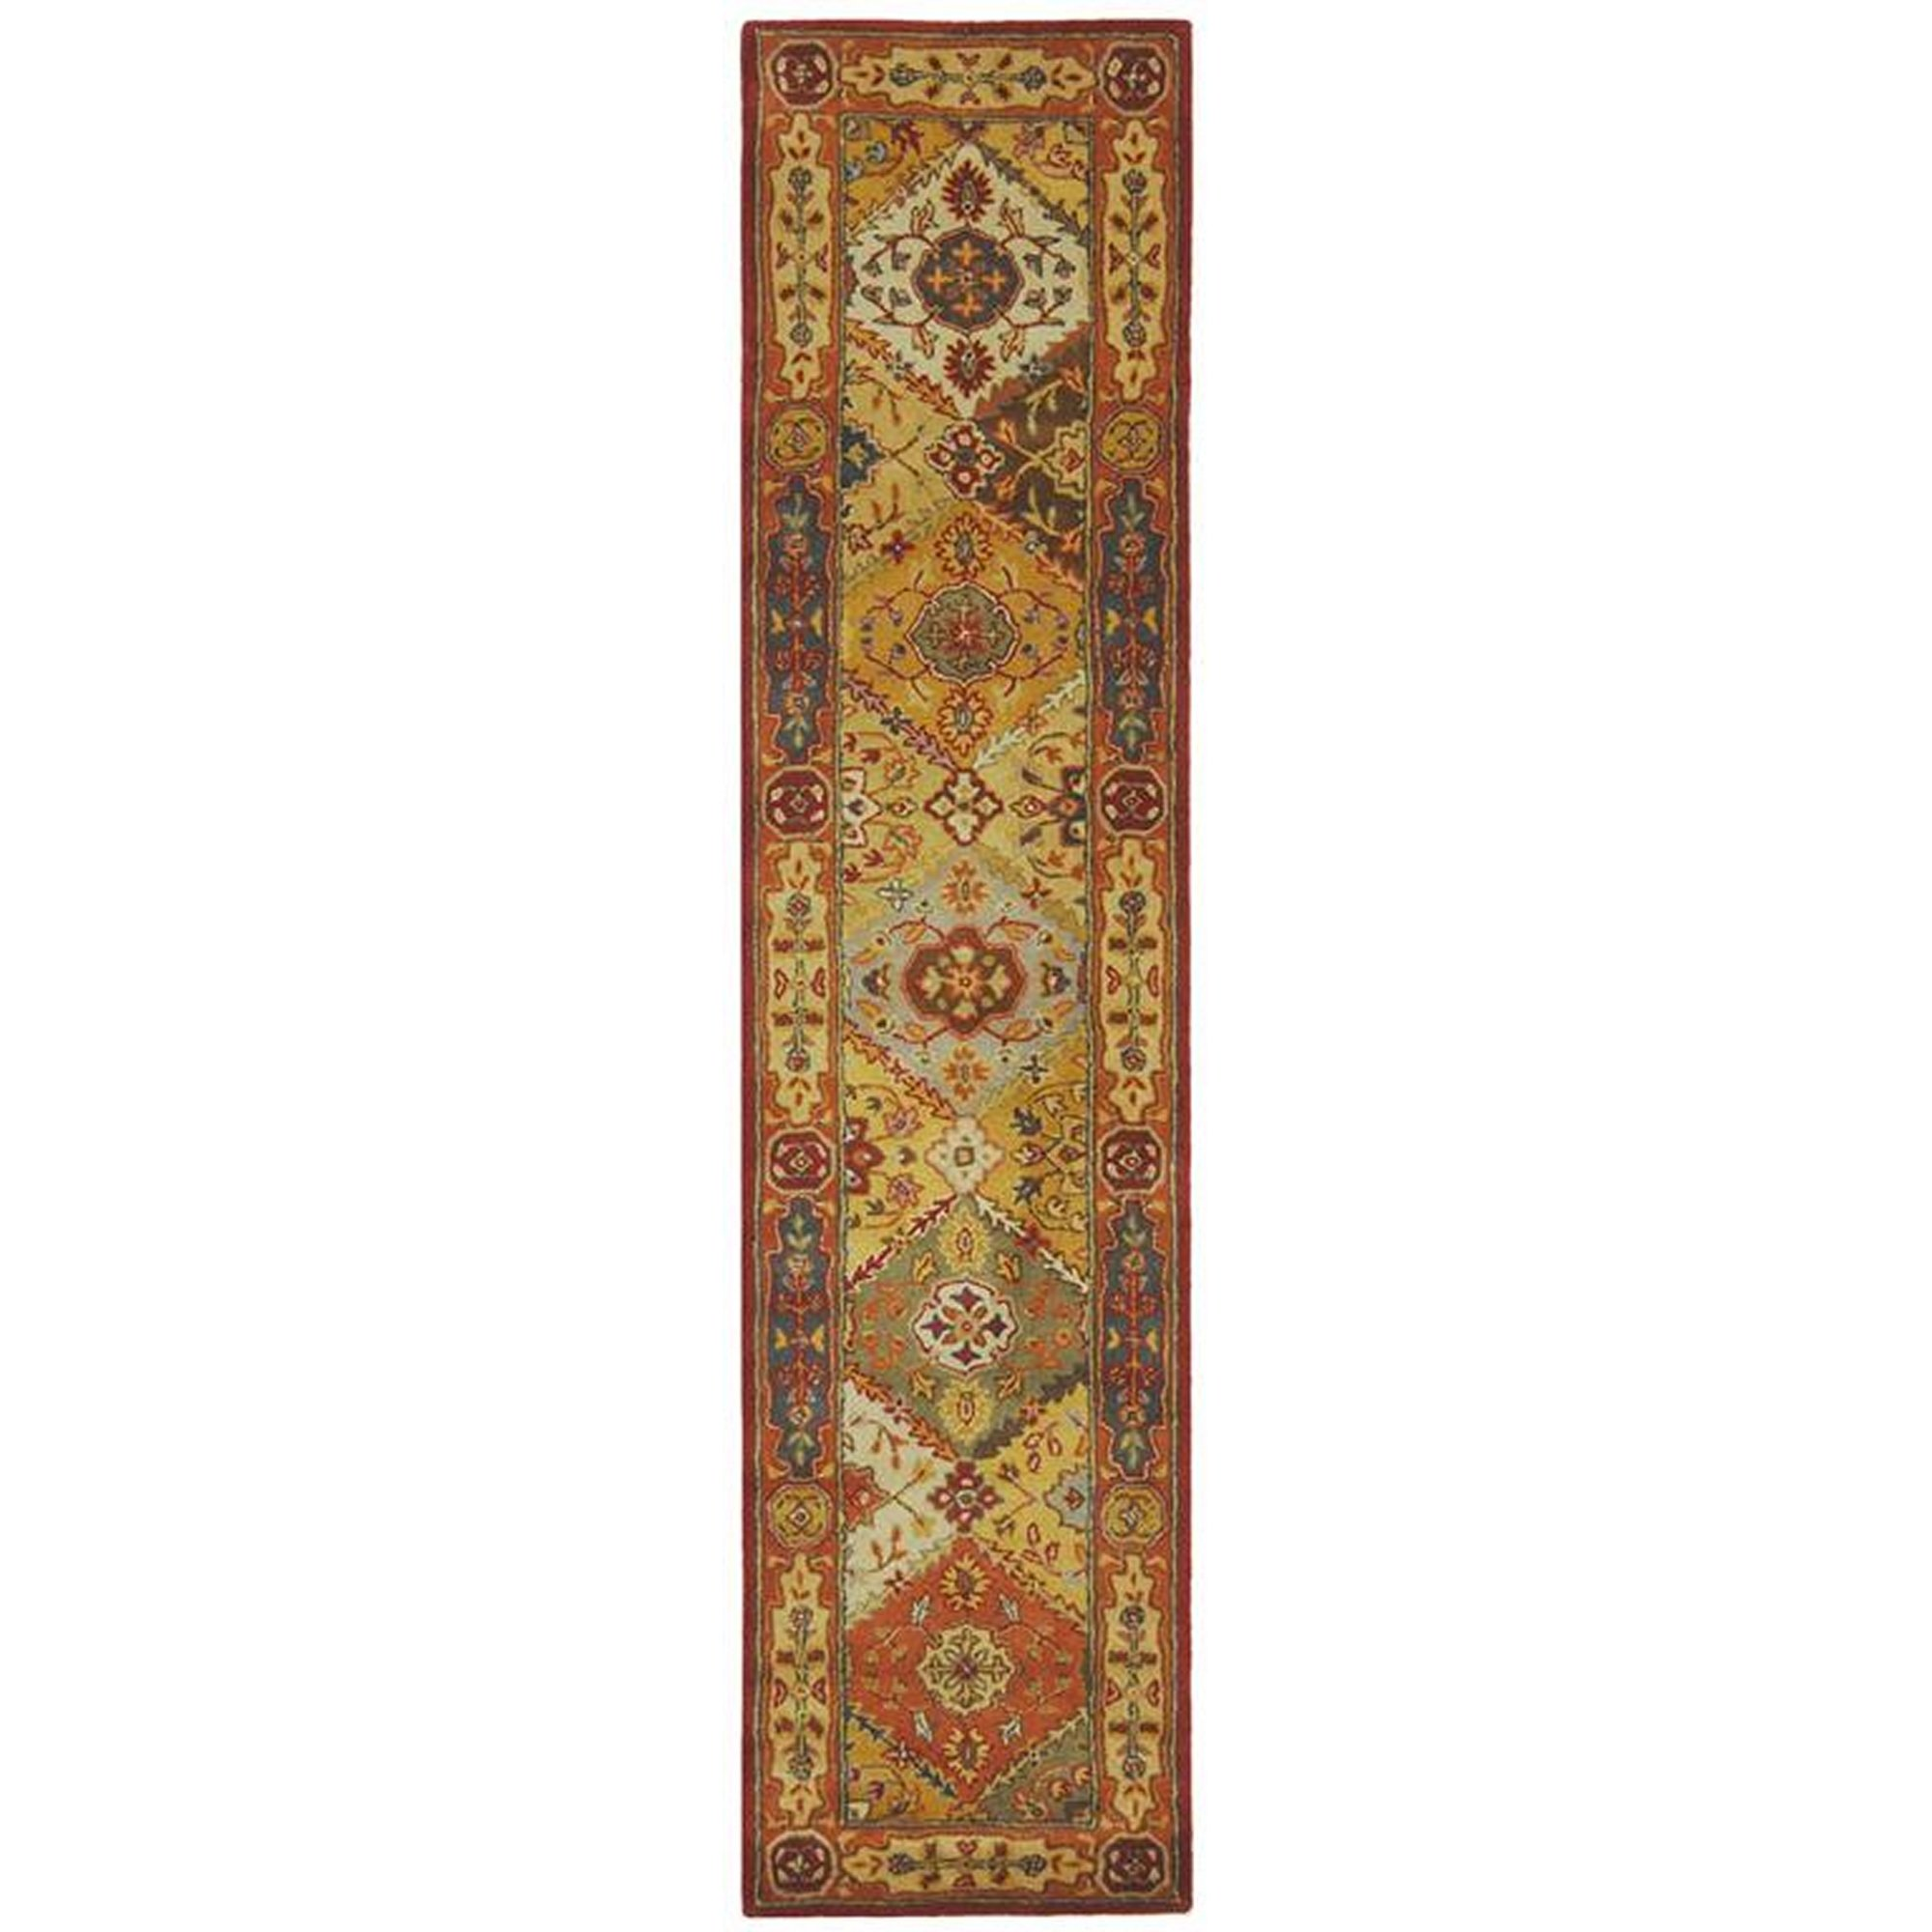 Safavieh Heritage Collection HG512A Handcrafted Traditional Oriental Multicolored Wool Runner (2'3'' x 14')